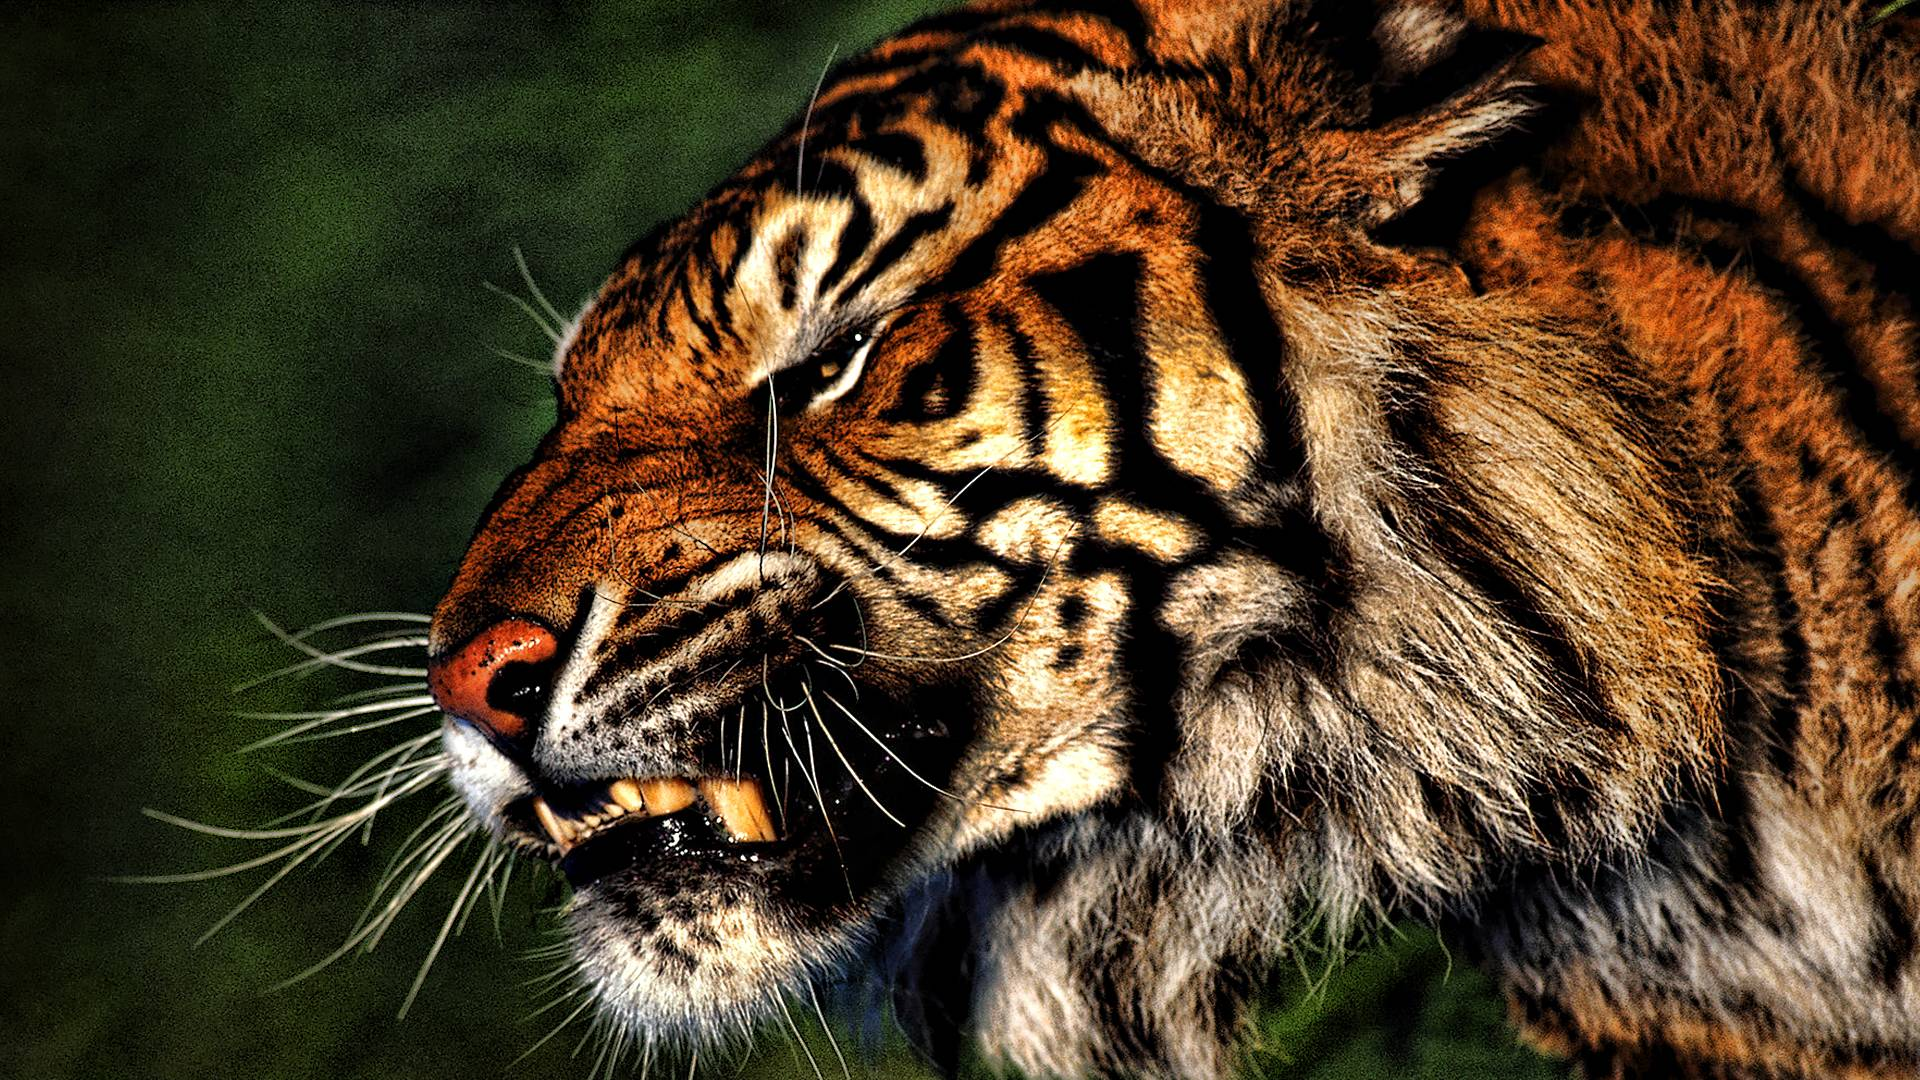 Image of: Lion Tiger Wallpaper Tiger Wallpaper Part Wallpapercave Tiger Hd Wallpapers Wallpaper Cave